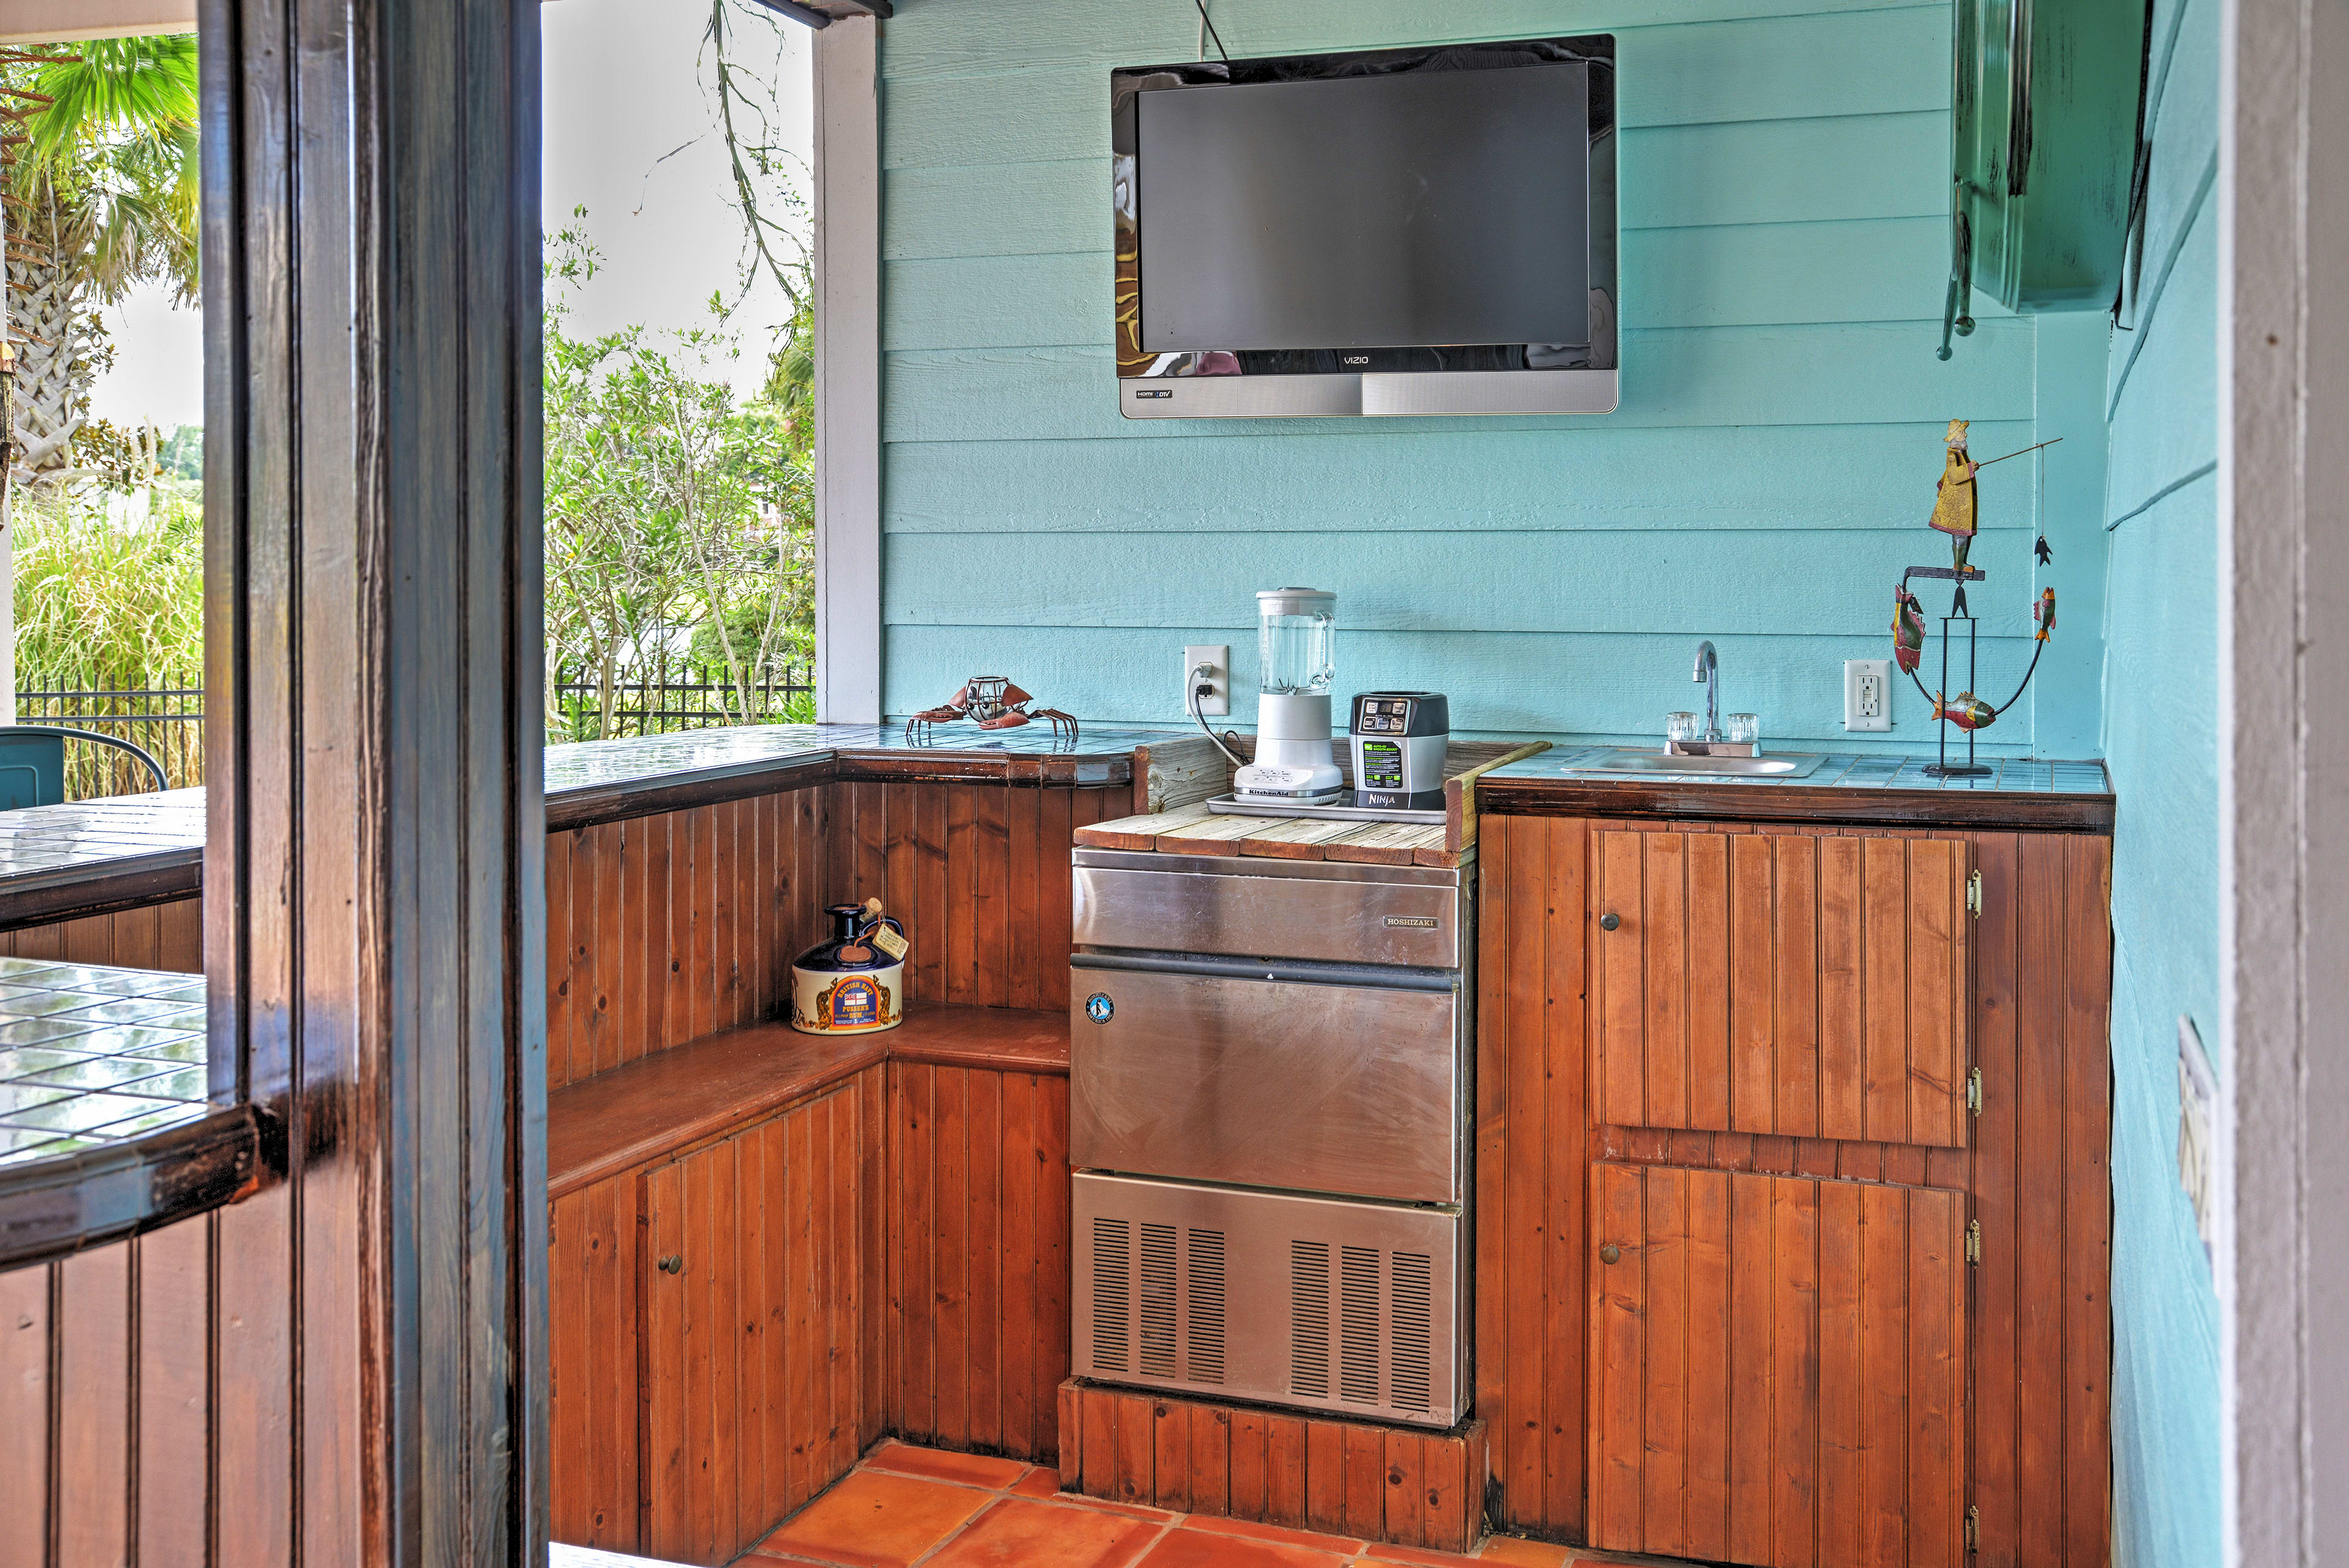 Whip up your favorite cocktail in the outdoor bar.